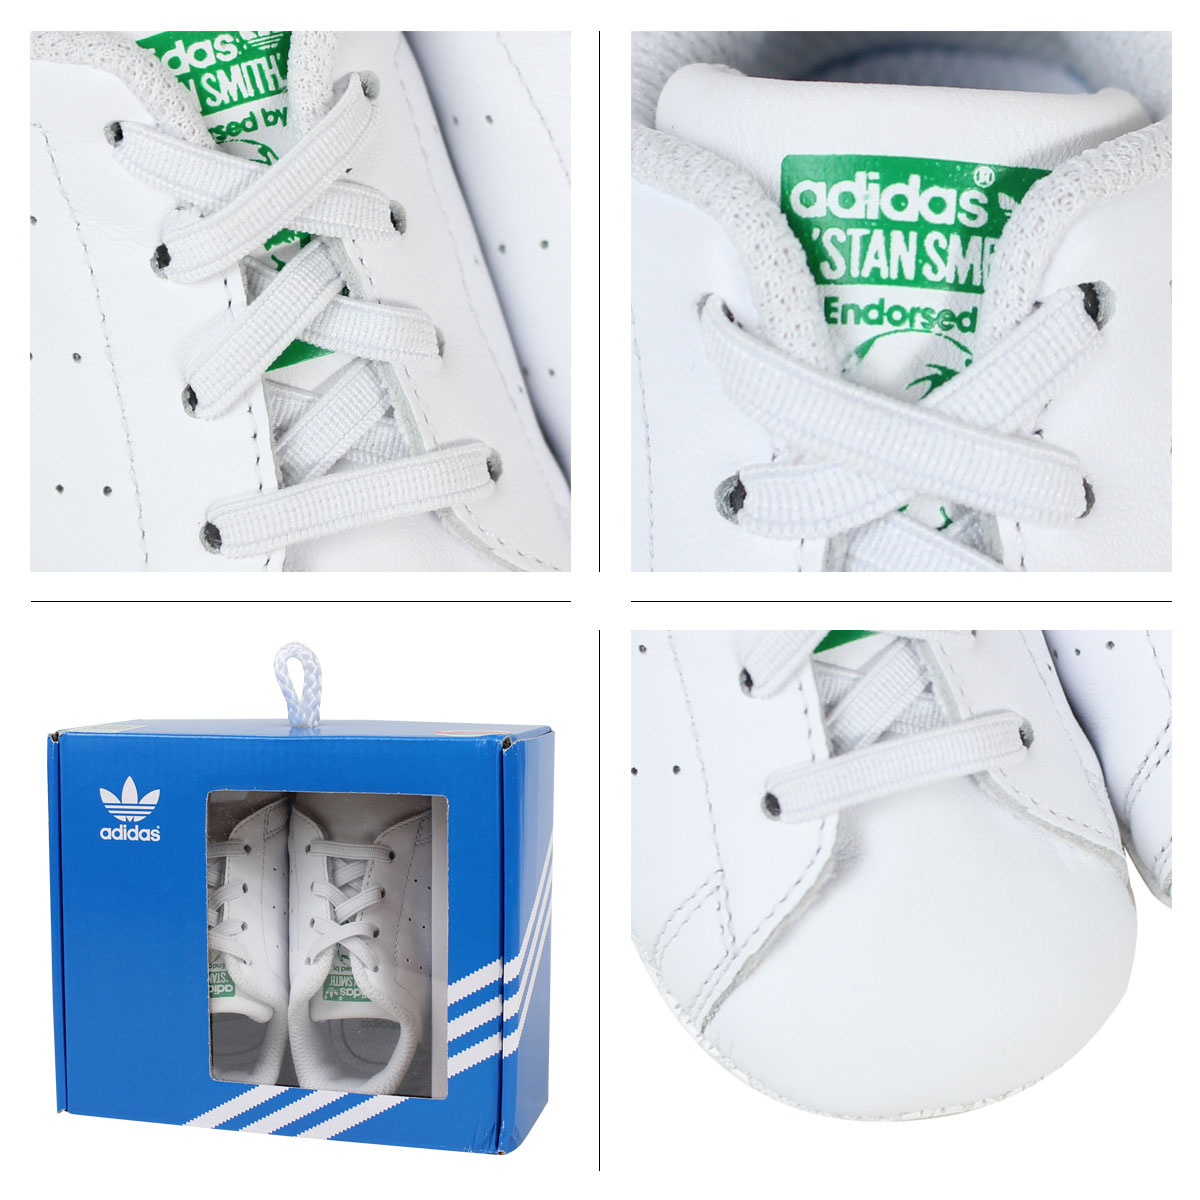 on sale 0f324 fe04e adidas Originals STAN SMITH CRIB Stan Smith kids baby Adidas originals  sneakers shoes B24101 white [192]